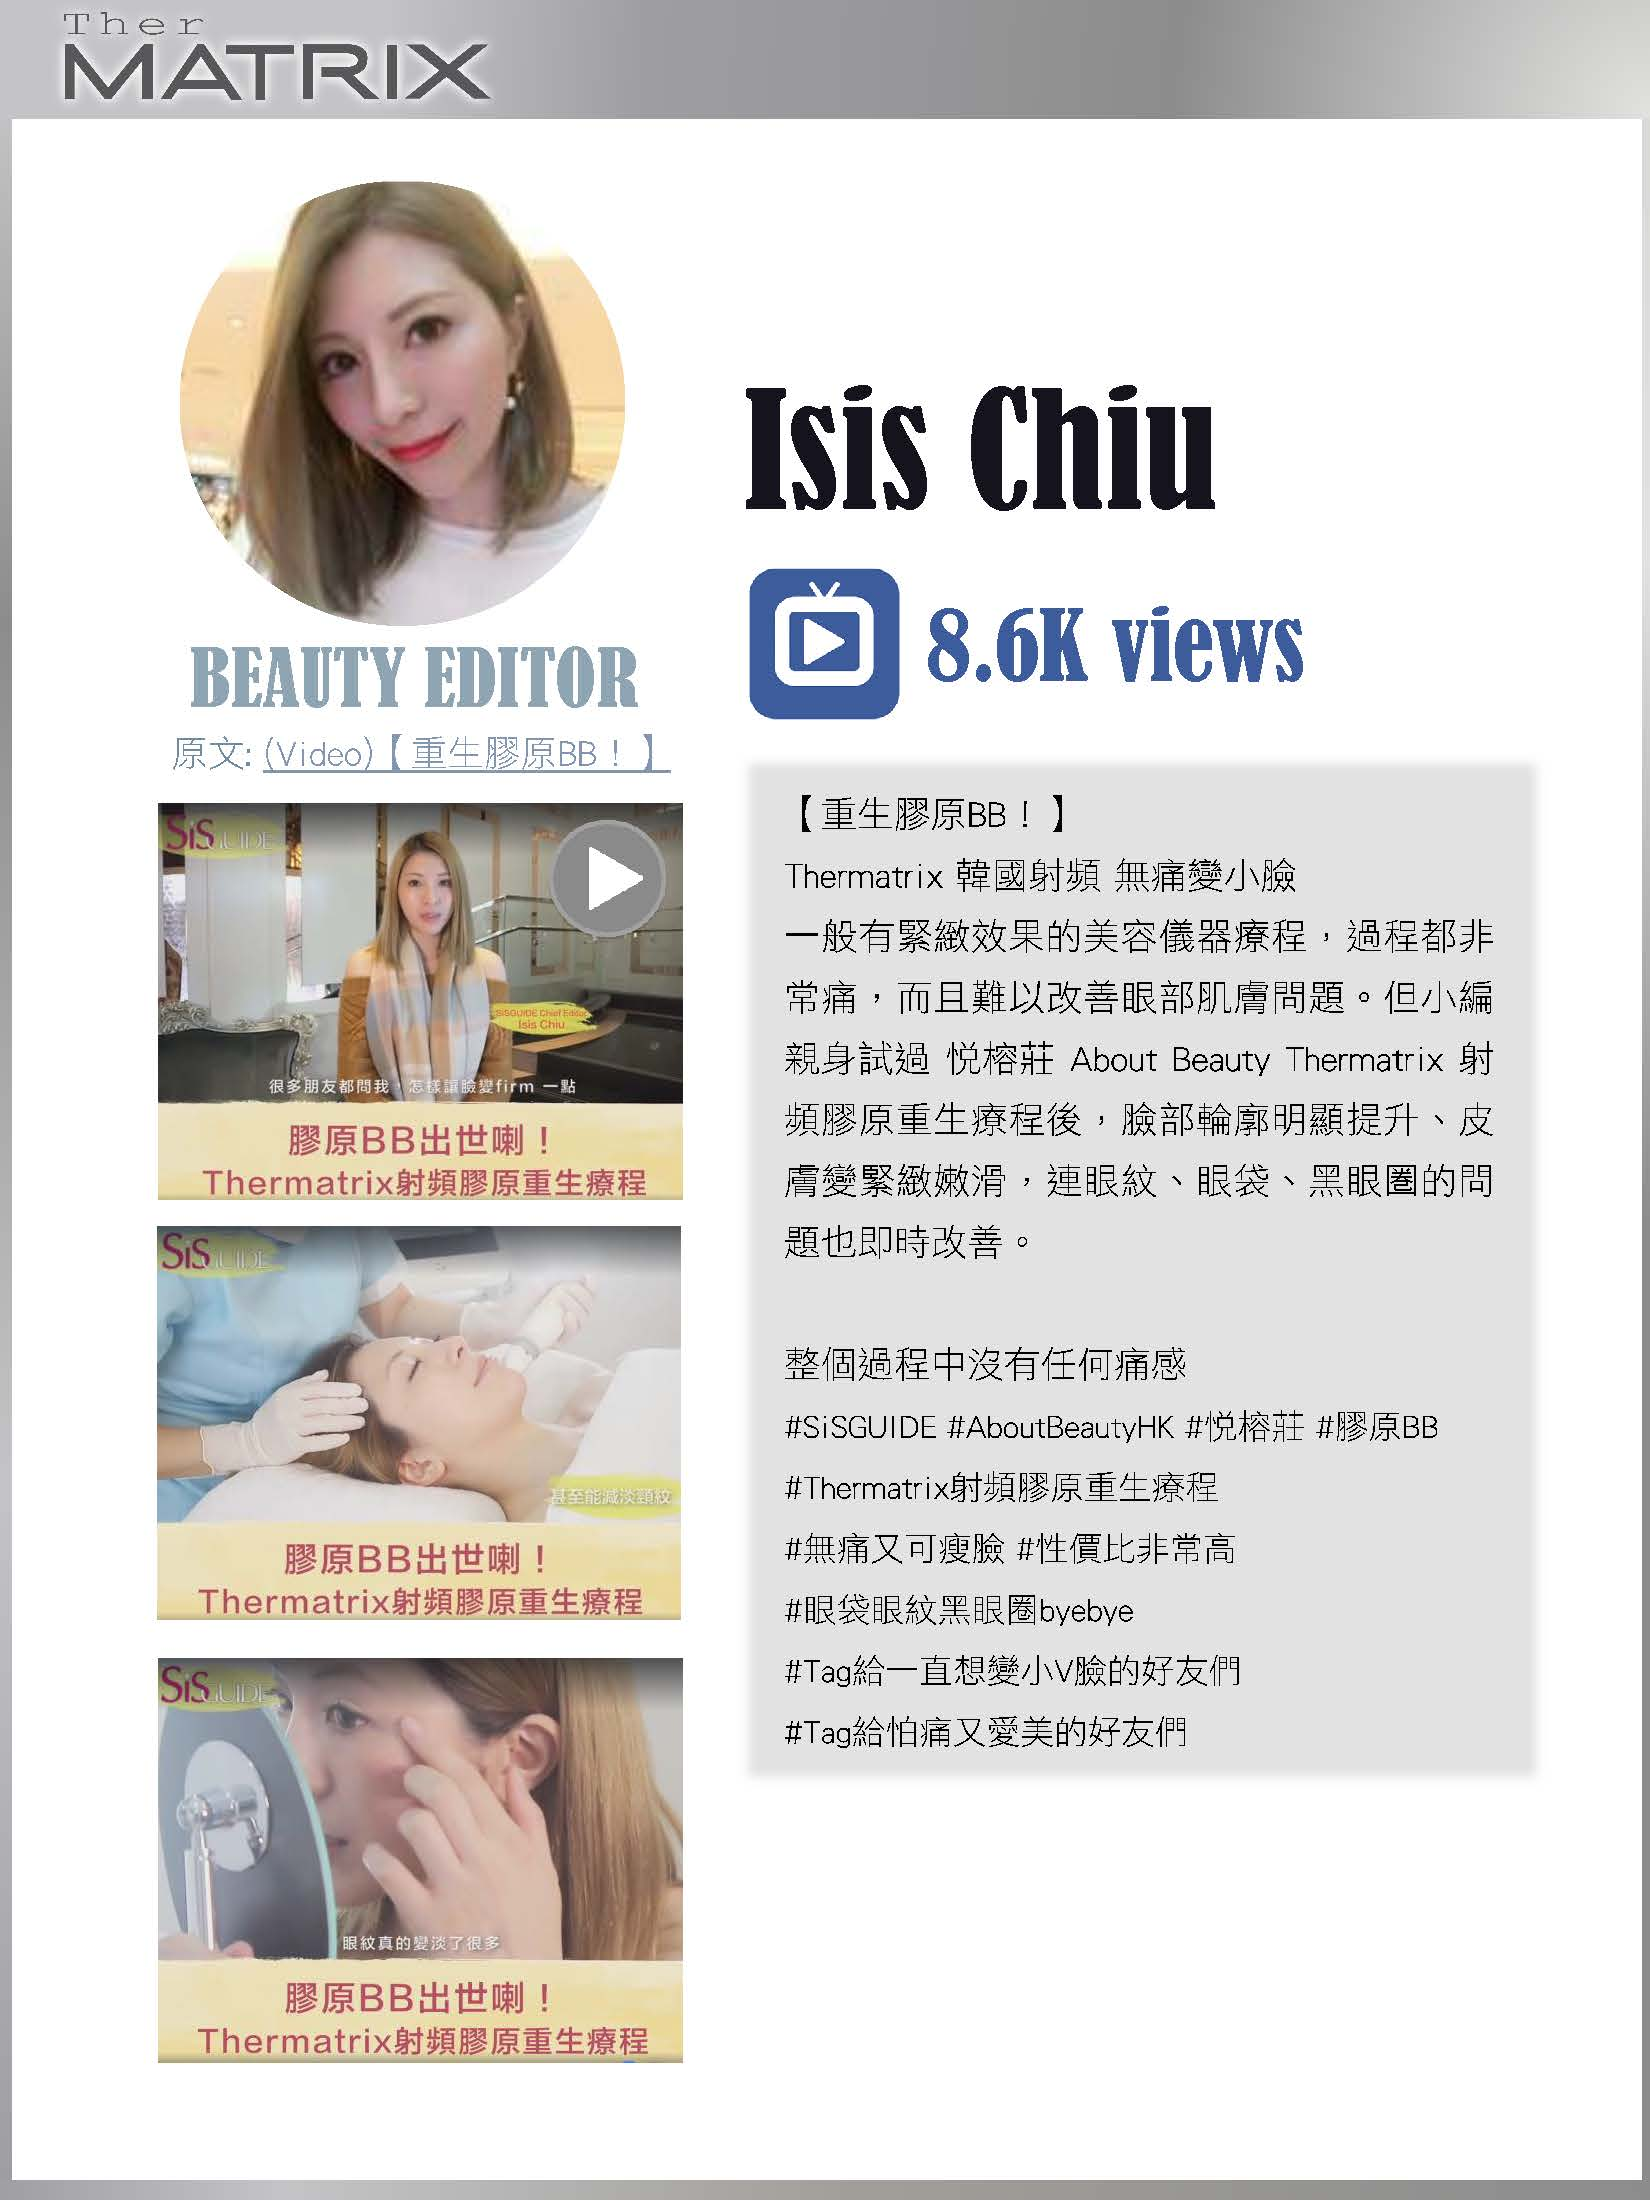 TherMatrix ─ SiSGUIDE Cheif Editor, Isis Chiu【重生膠原BB!】